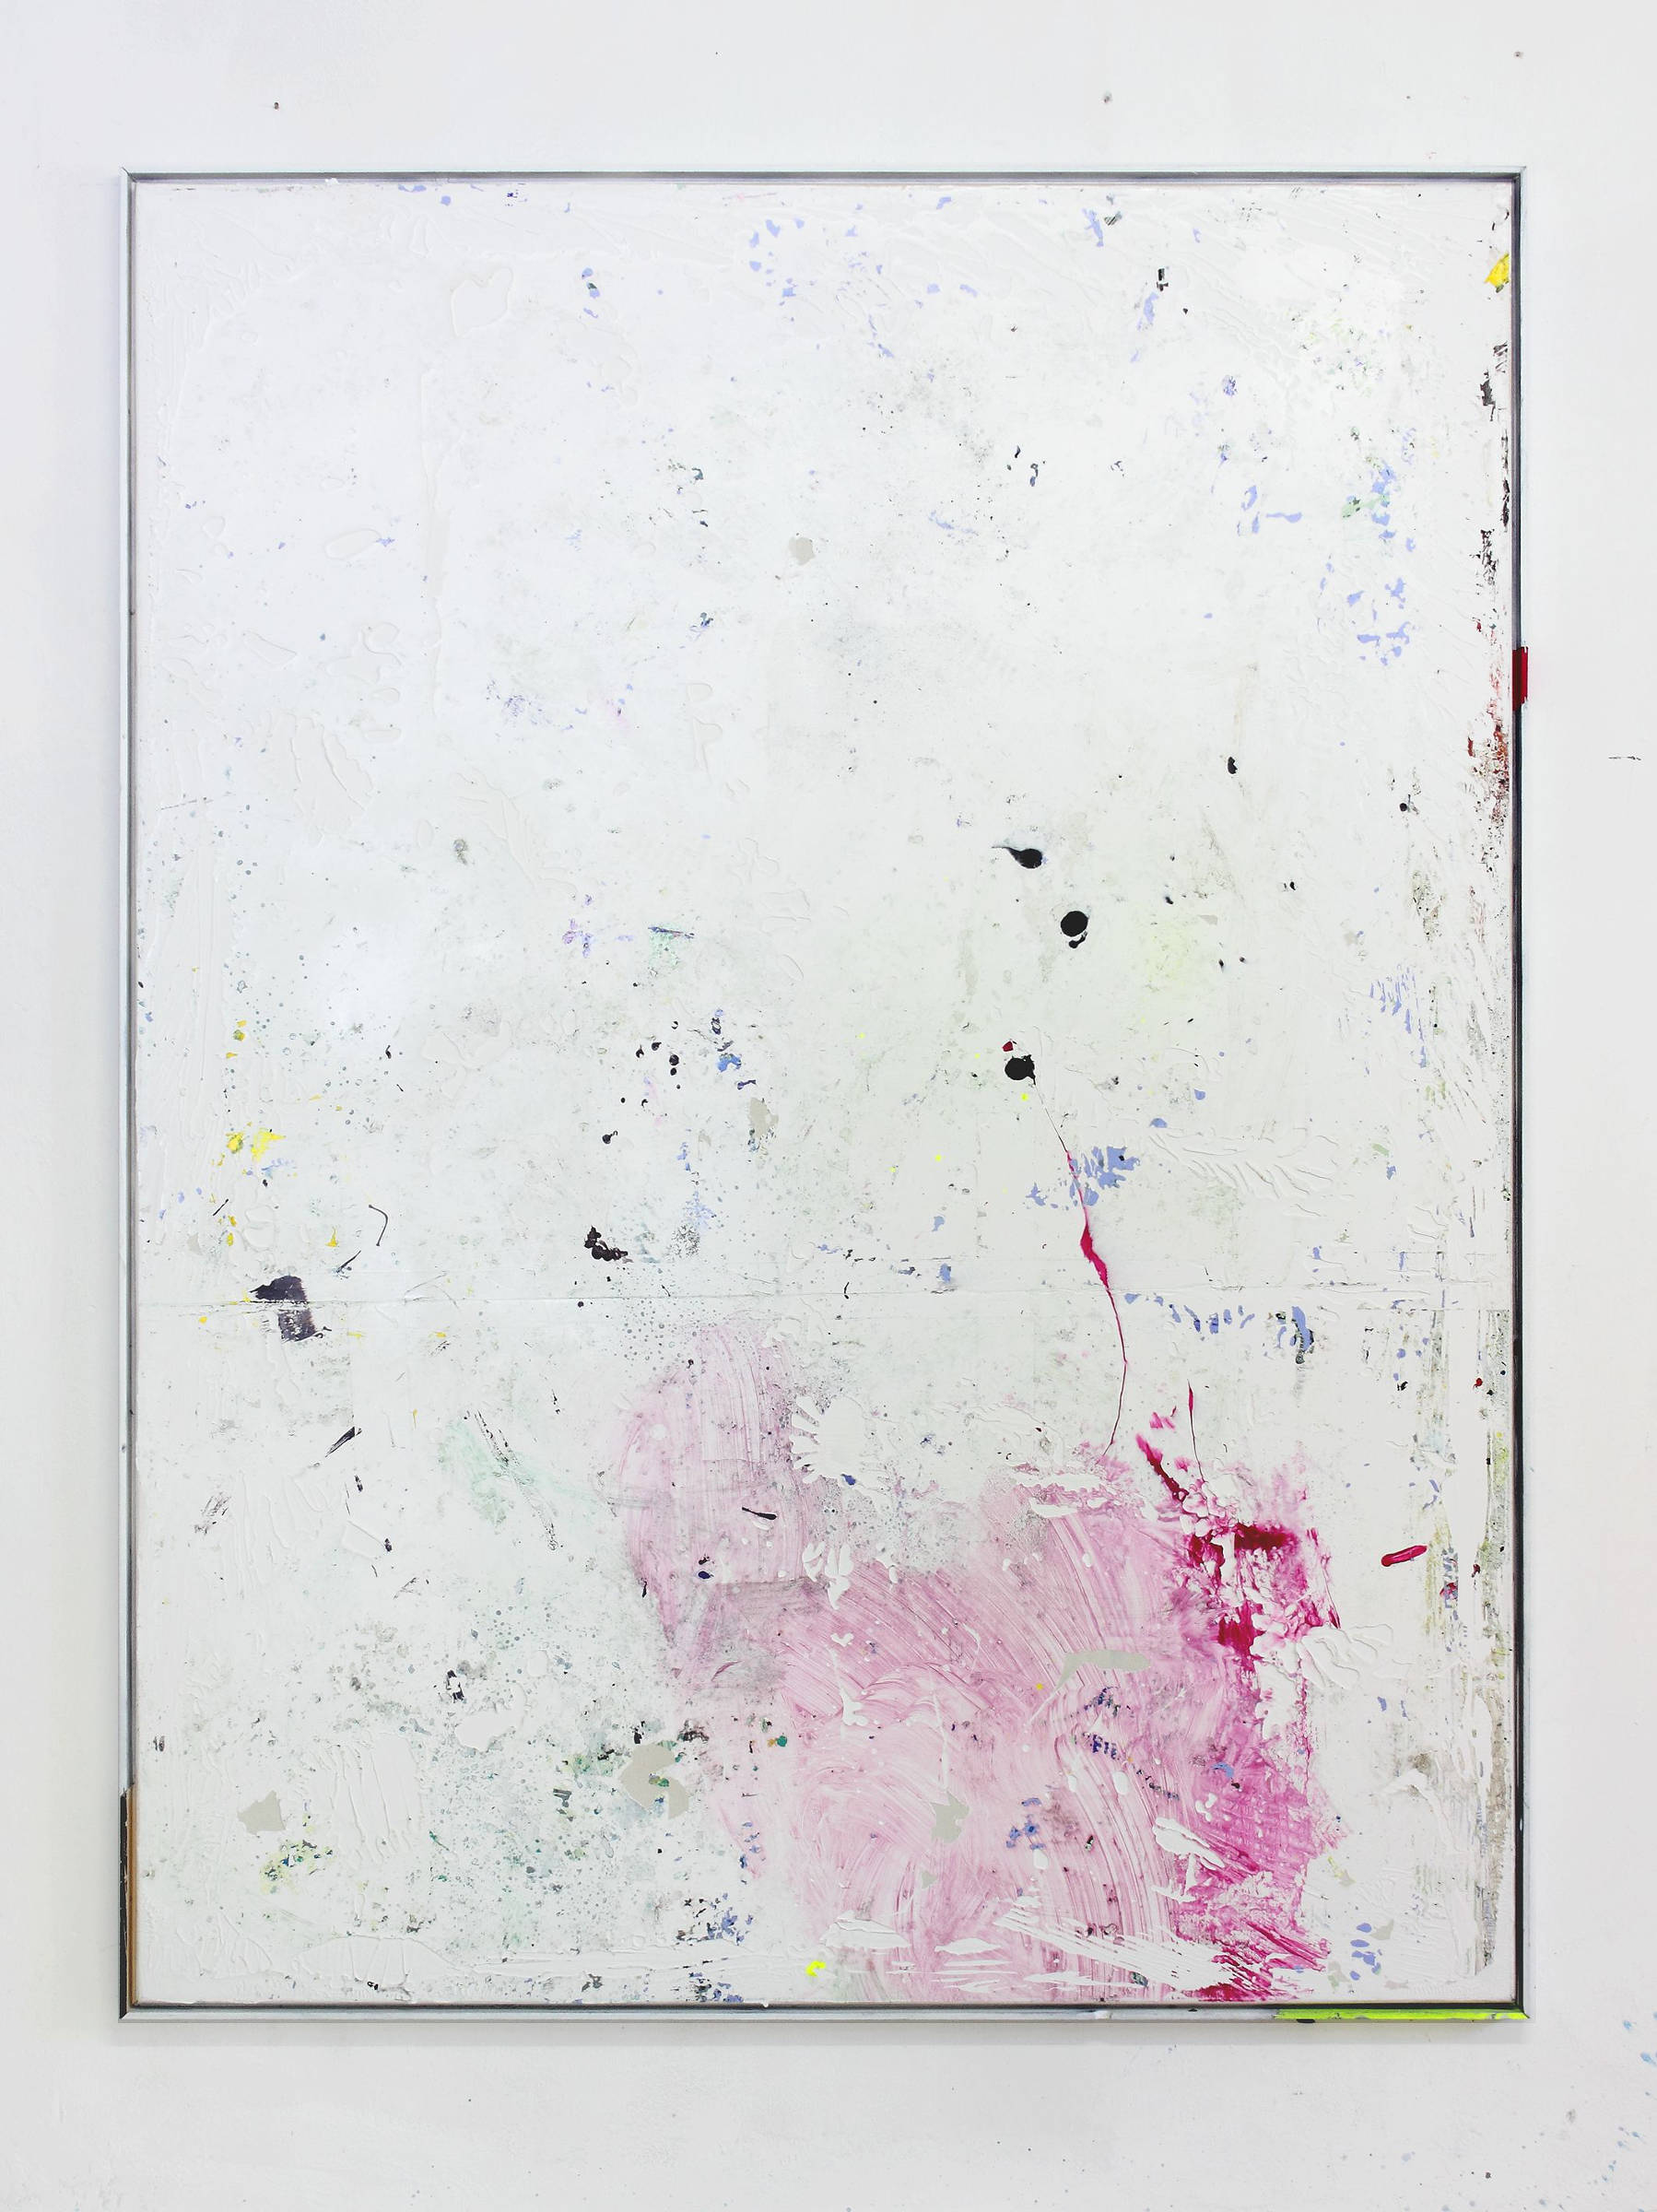 52__tiziano martini, untitled,  2016, acrylics, dirt and monothype process on acrylic paint on primer on cotton, artist frame, cm 162x122